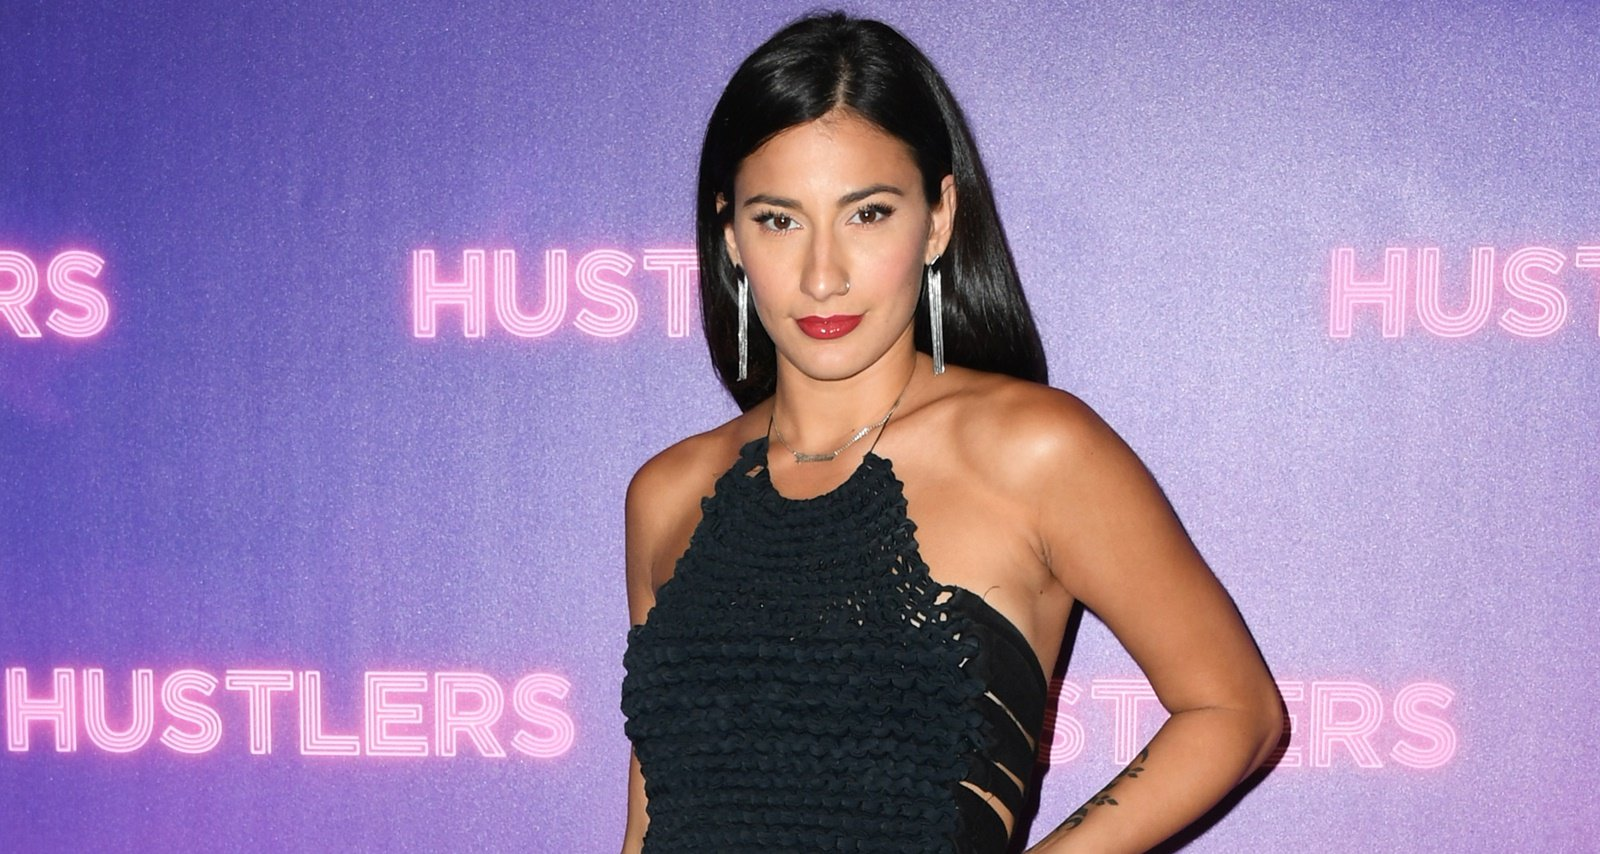 Who is Lexy Panterra? Wiki, Age, Family and Facts To Know About The Twerk Queen